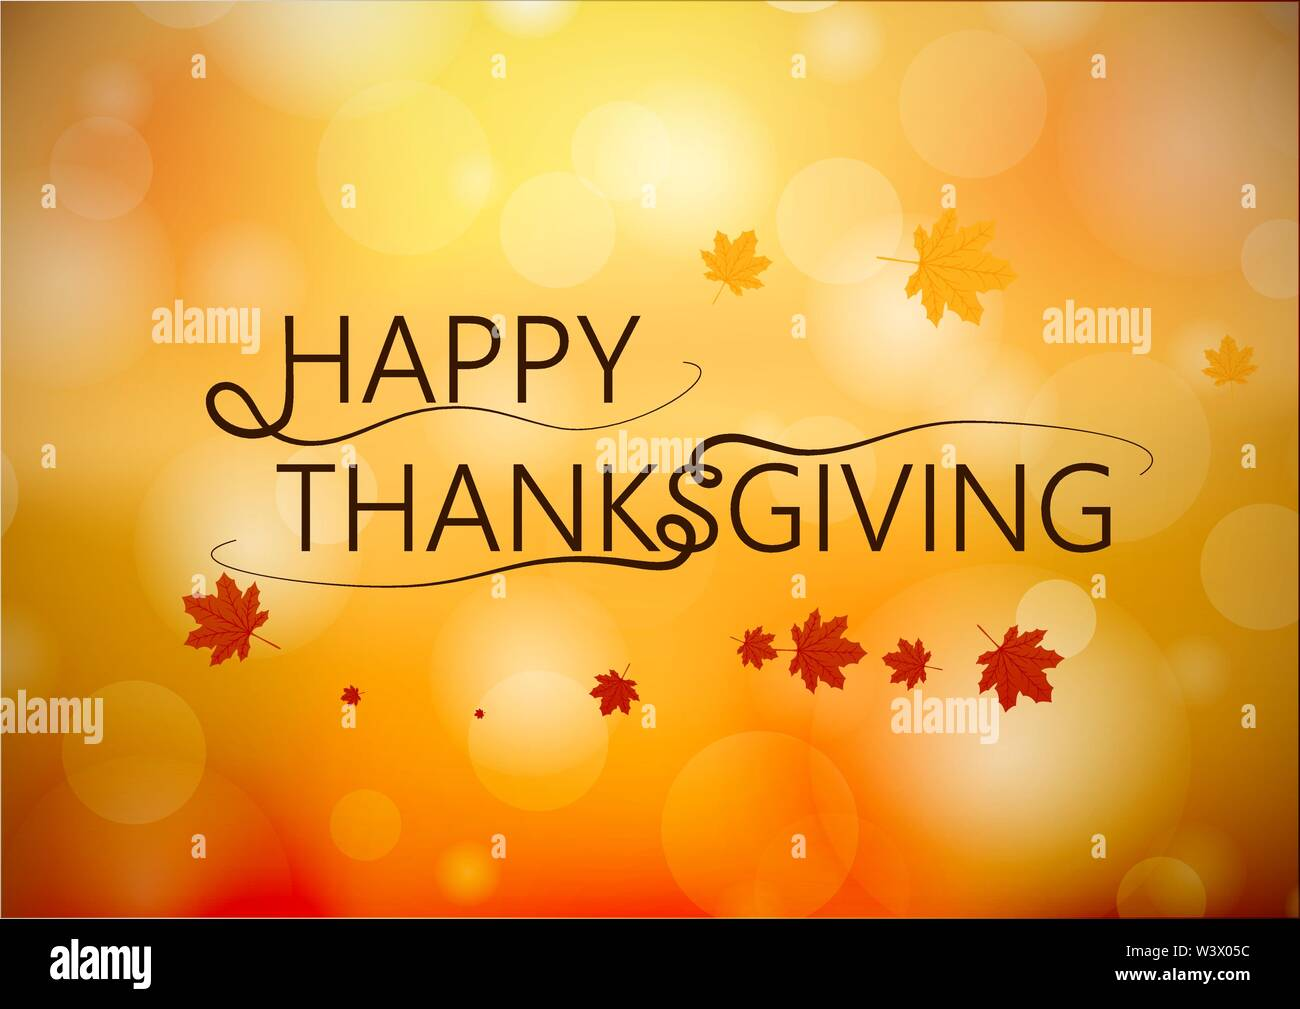 Banner Happy Thanksgiving on blur autumn background. Vector illustration. - Stock Image